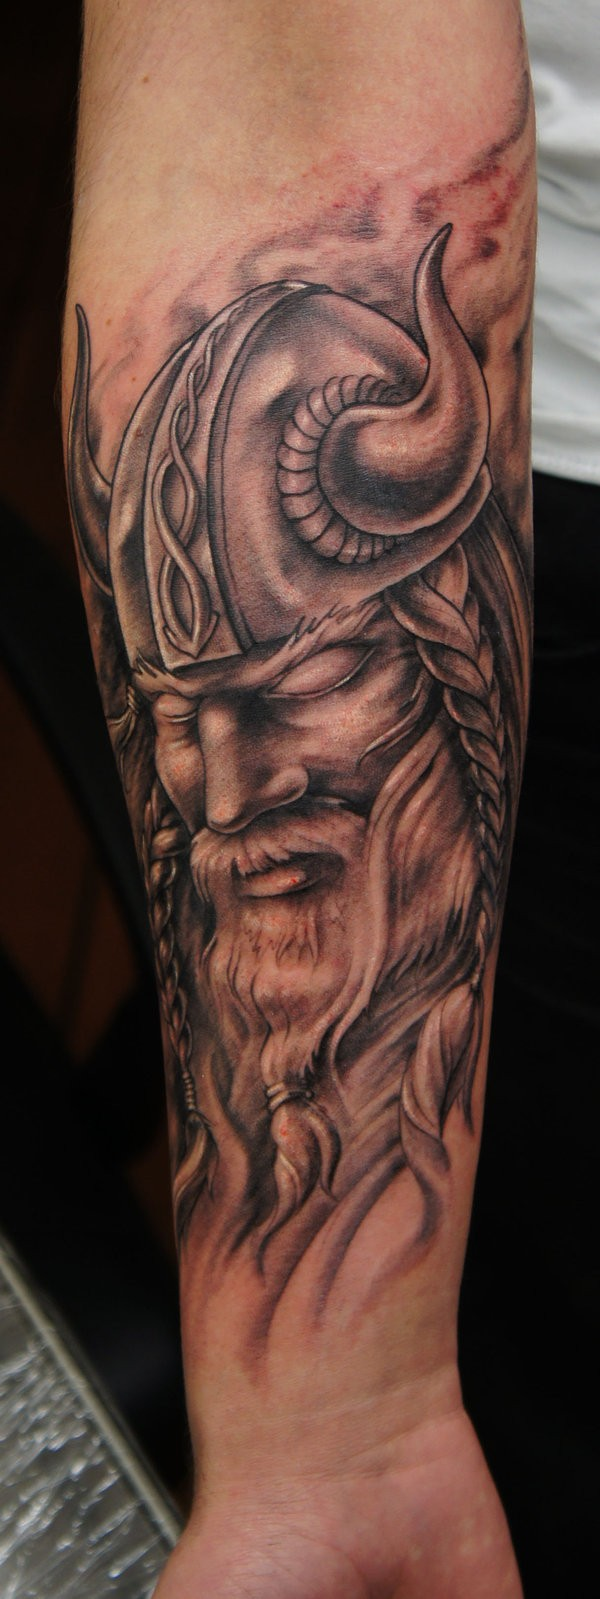 pacified viking warrior tattoo on forearm. Black Bedroom Furniture Sets. Home Design Ideas